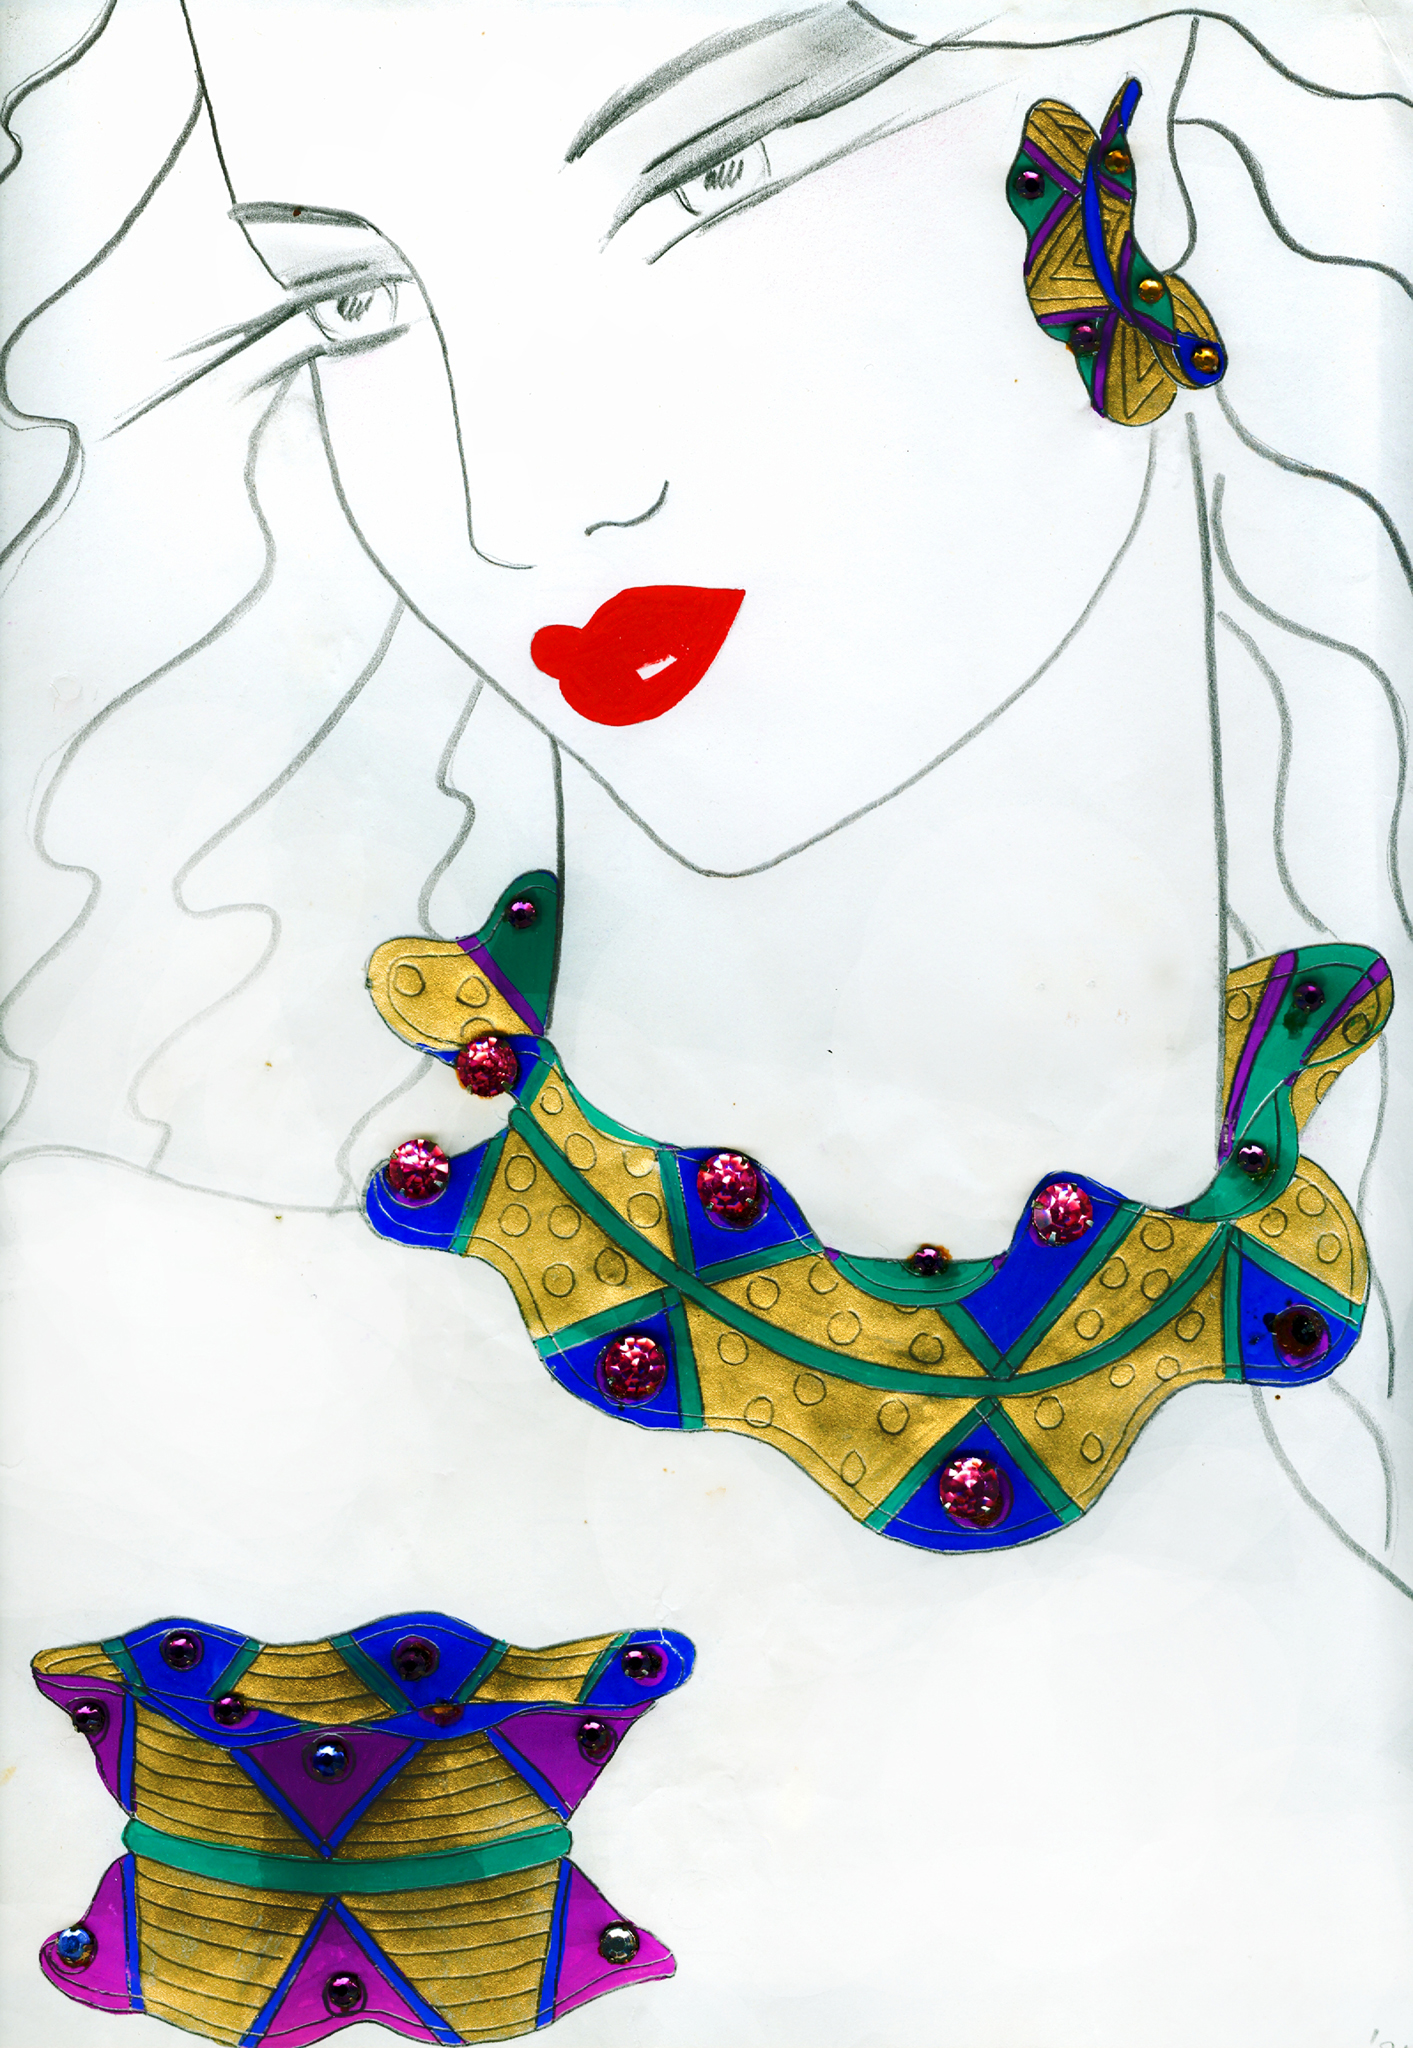 Jewelry Drawing These Drawings of Jewelry Are